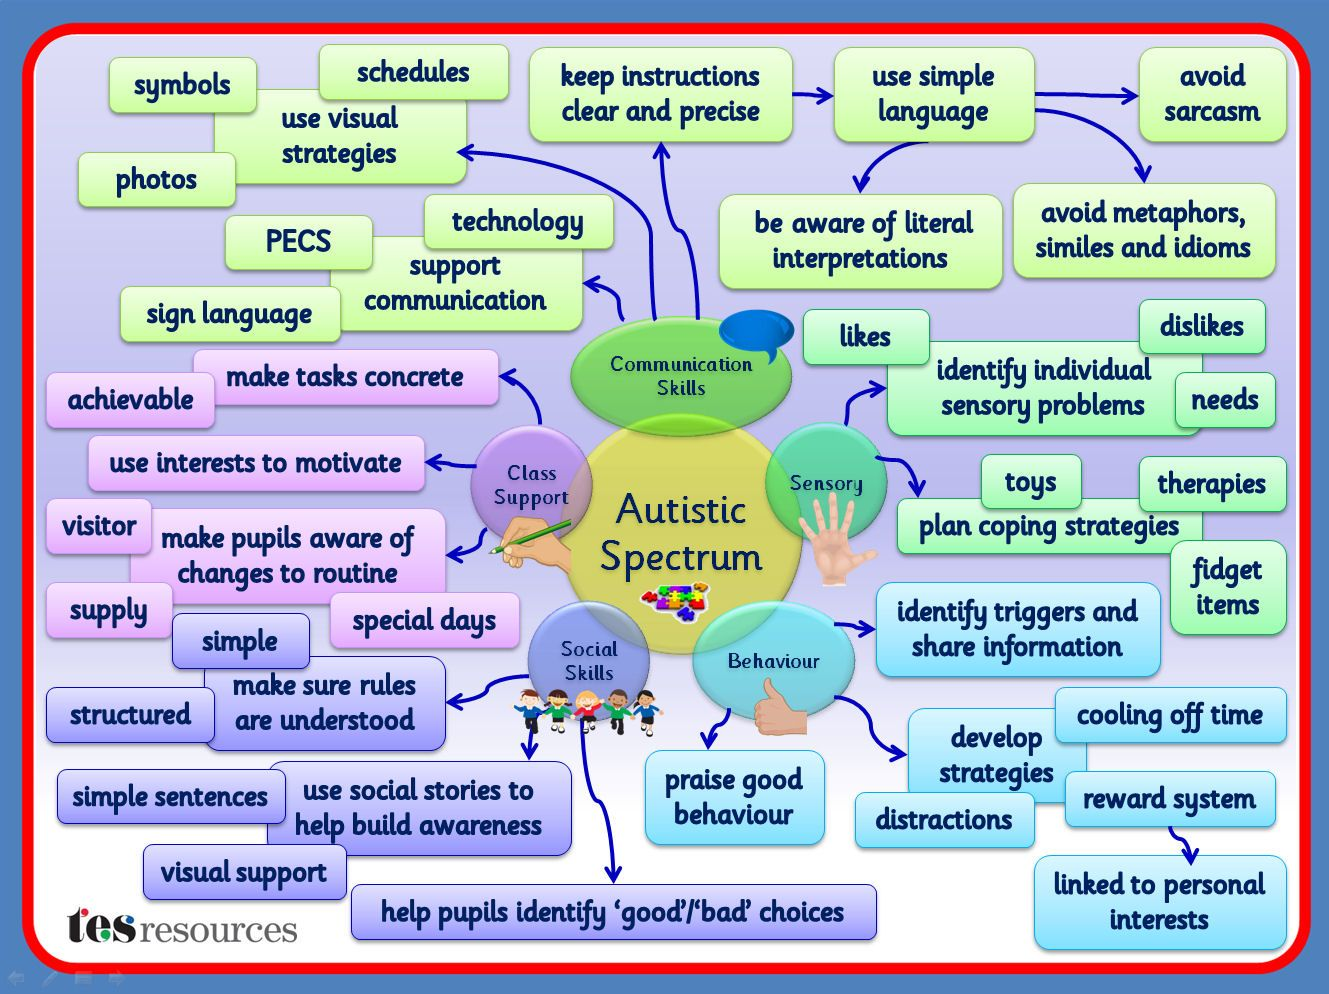 A Mind Map, created in PowerPoint, that works as a poster